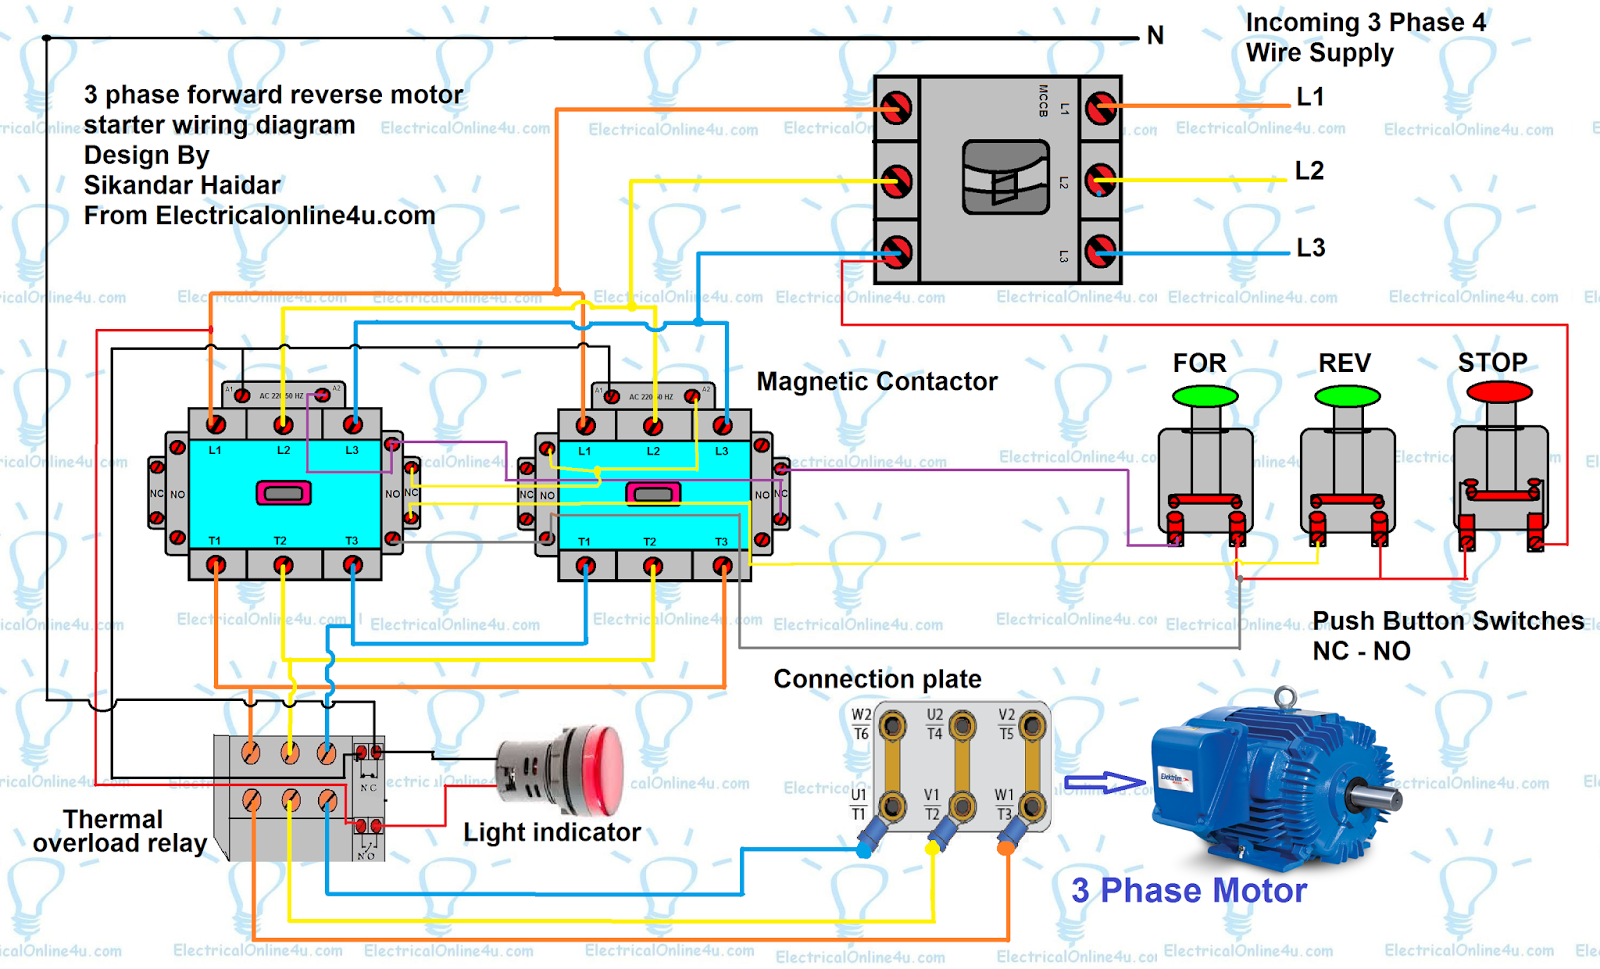 medium resolution of forward reverse motor control diagram for 3 phase motor electrical rh pinterest co uk circuit diagram